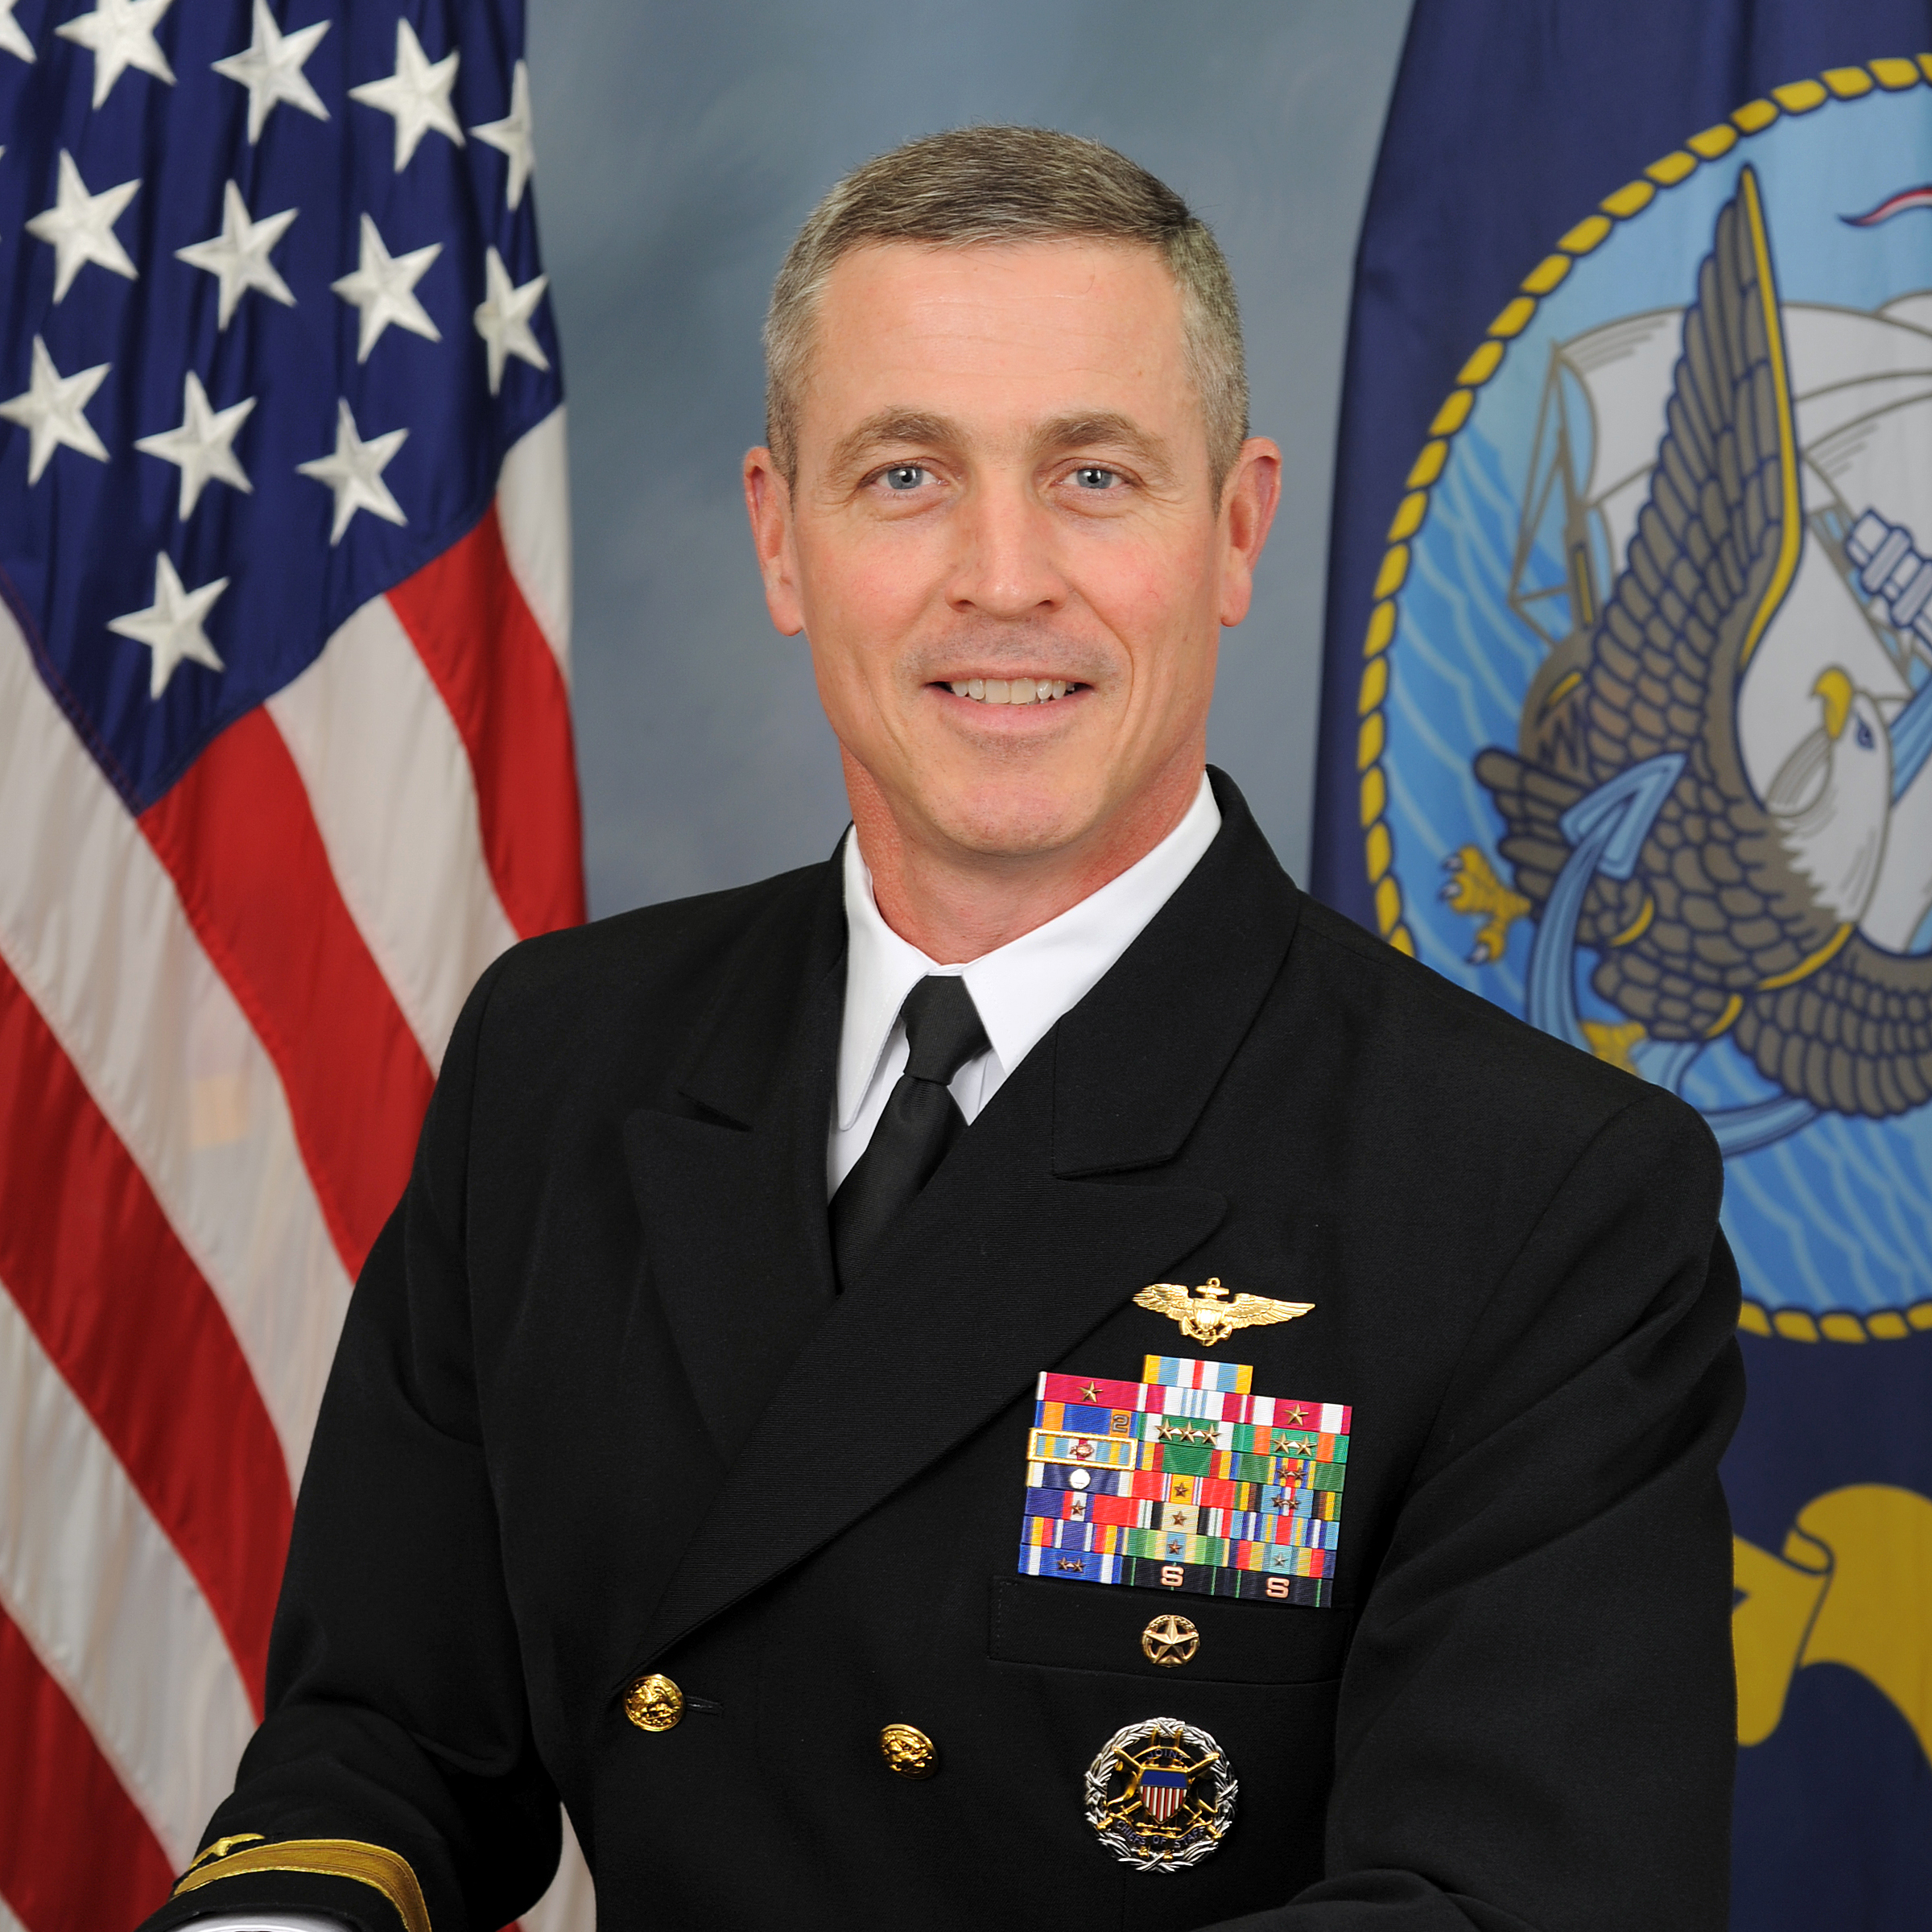 Rear Admiral Pete Garvin, Commander, Patrol & Reconnaissance Group at U.S. Navy